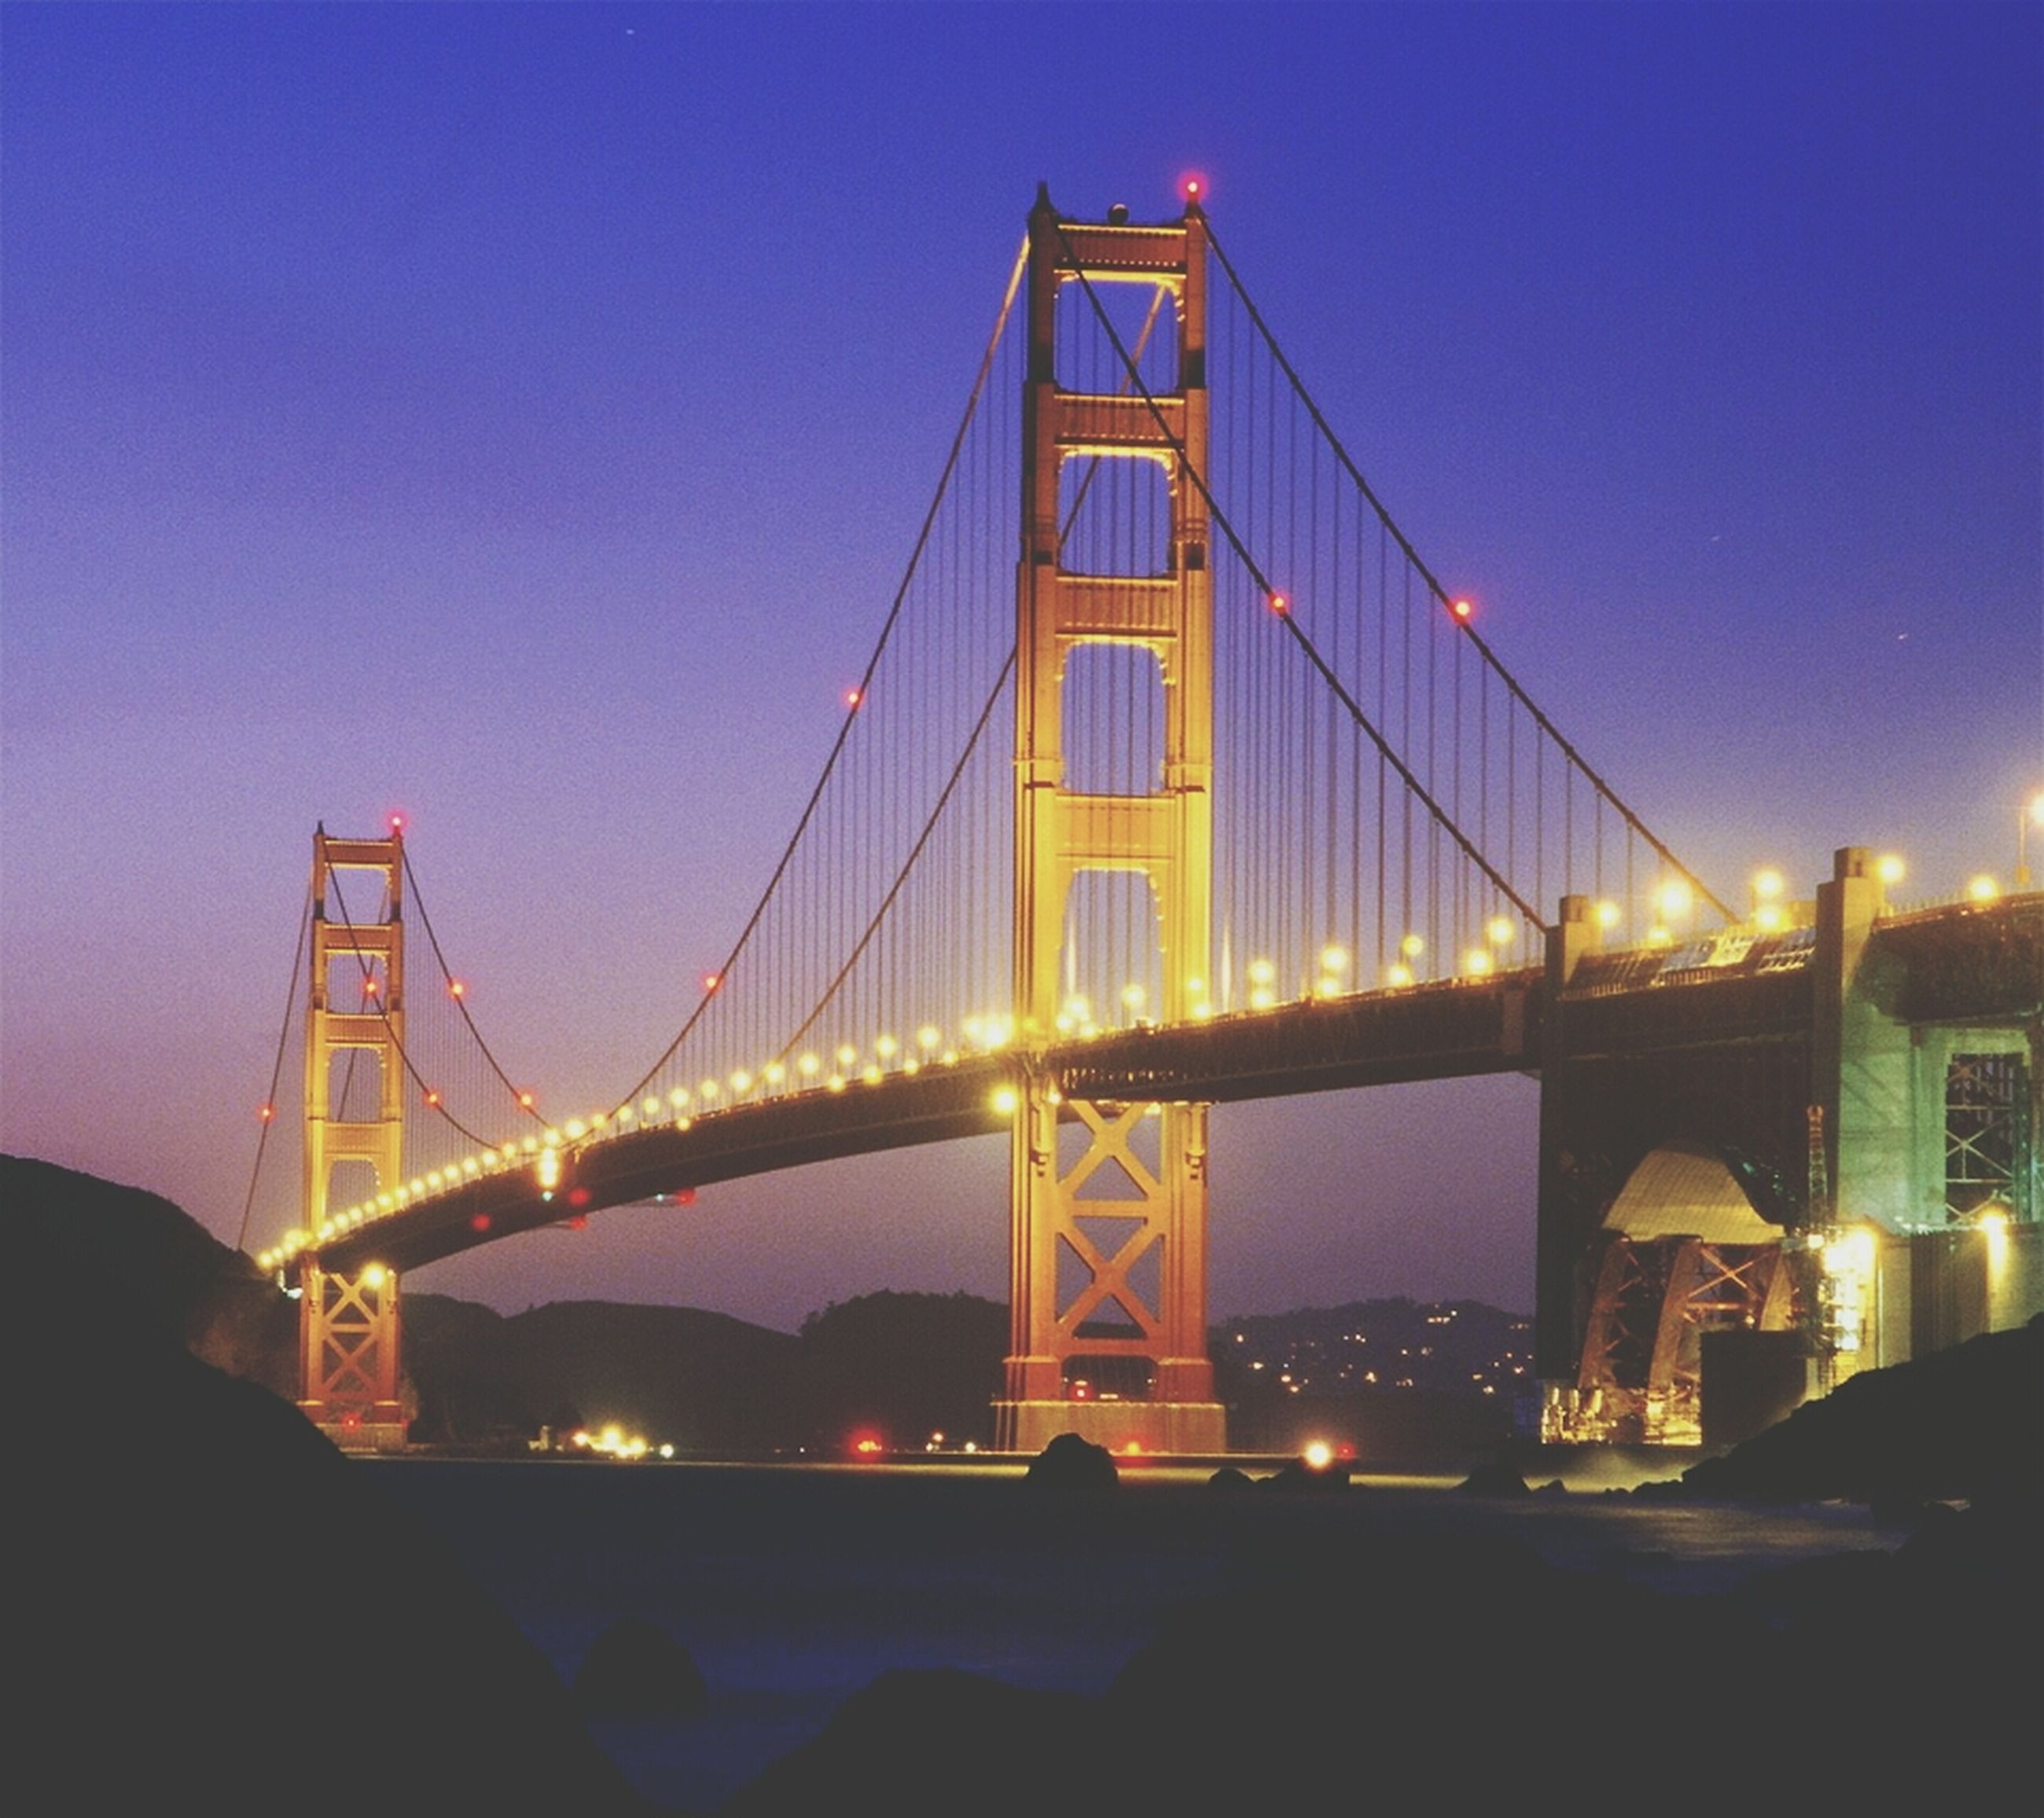 architecture, built structure, connection, suspension bridge, bridge - man made structure, engineering, international landmark, famous place, travel destinations, illuminated, capital cities, city, night, clear sky, tourism, golden gate bridge, travel, cable-stayed bridge, transportation, bridge